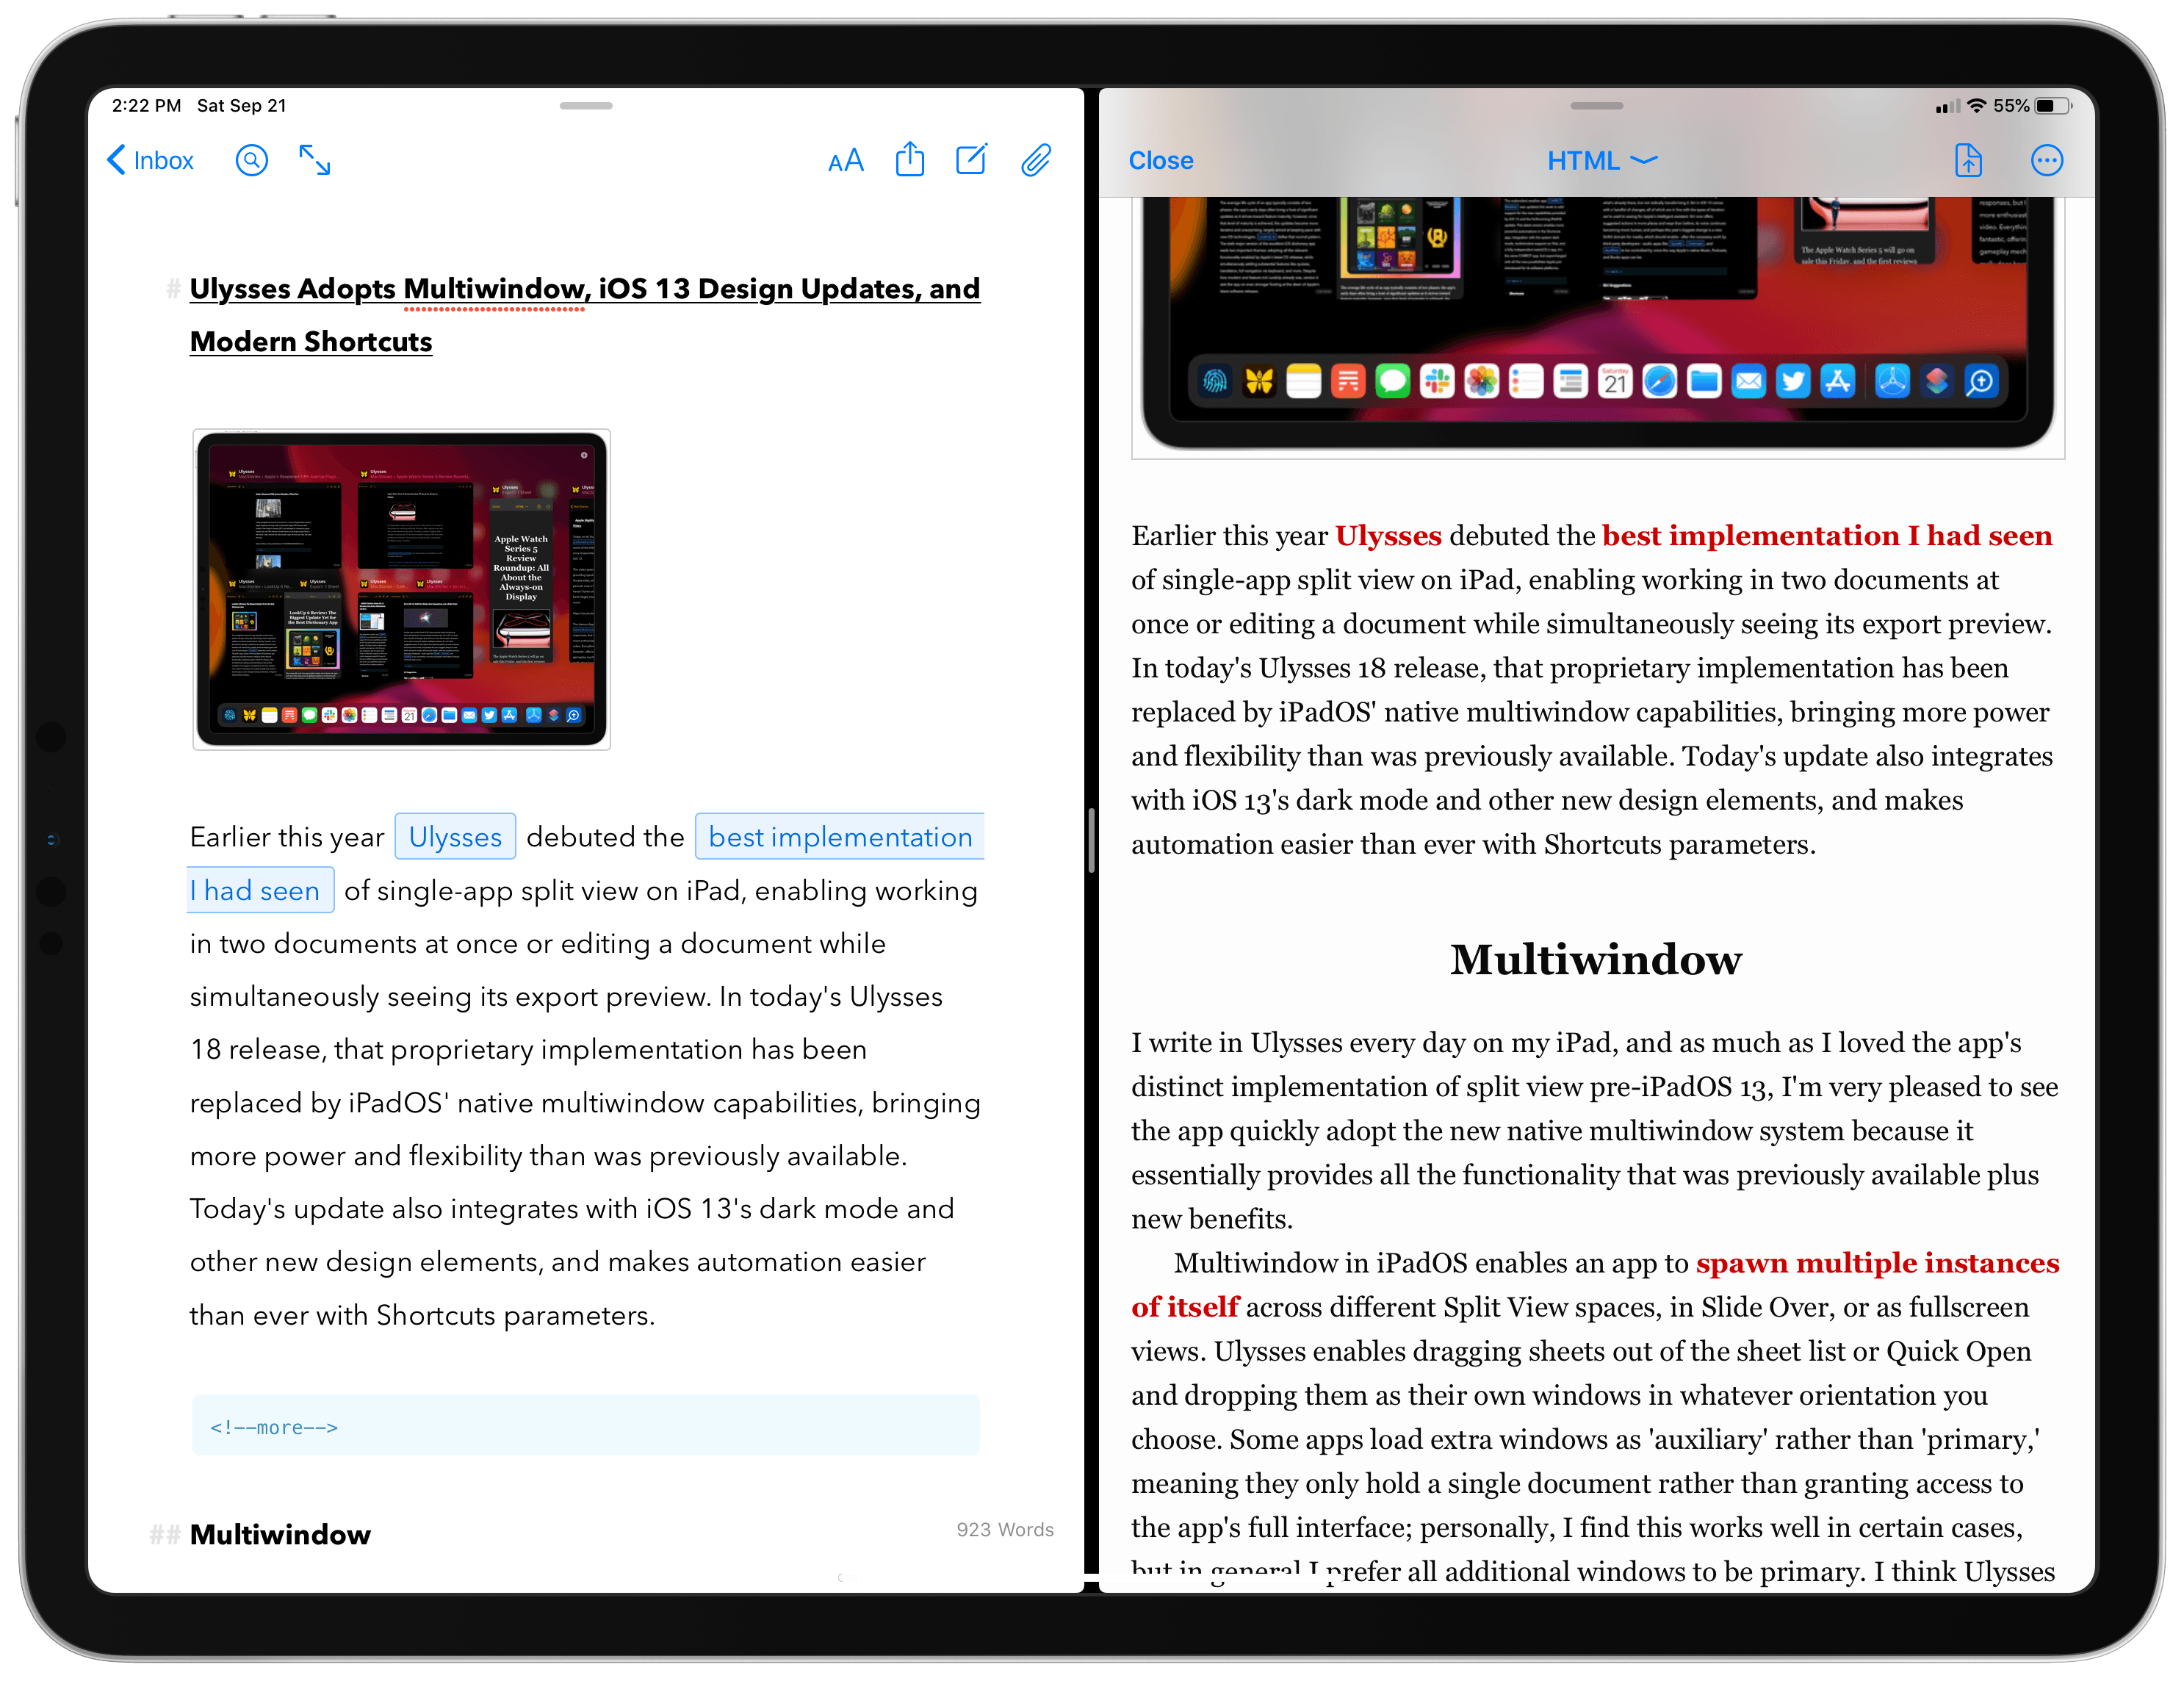 Ulysses Adopts Multiwindow, iOS 13 Design Updates, and Modern Shortcuts